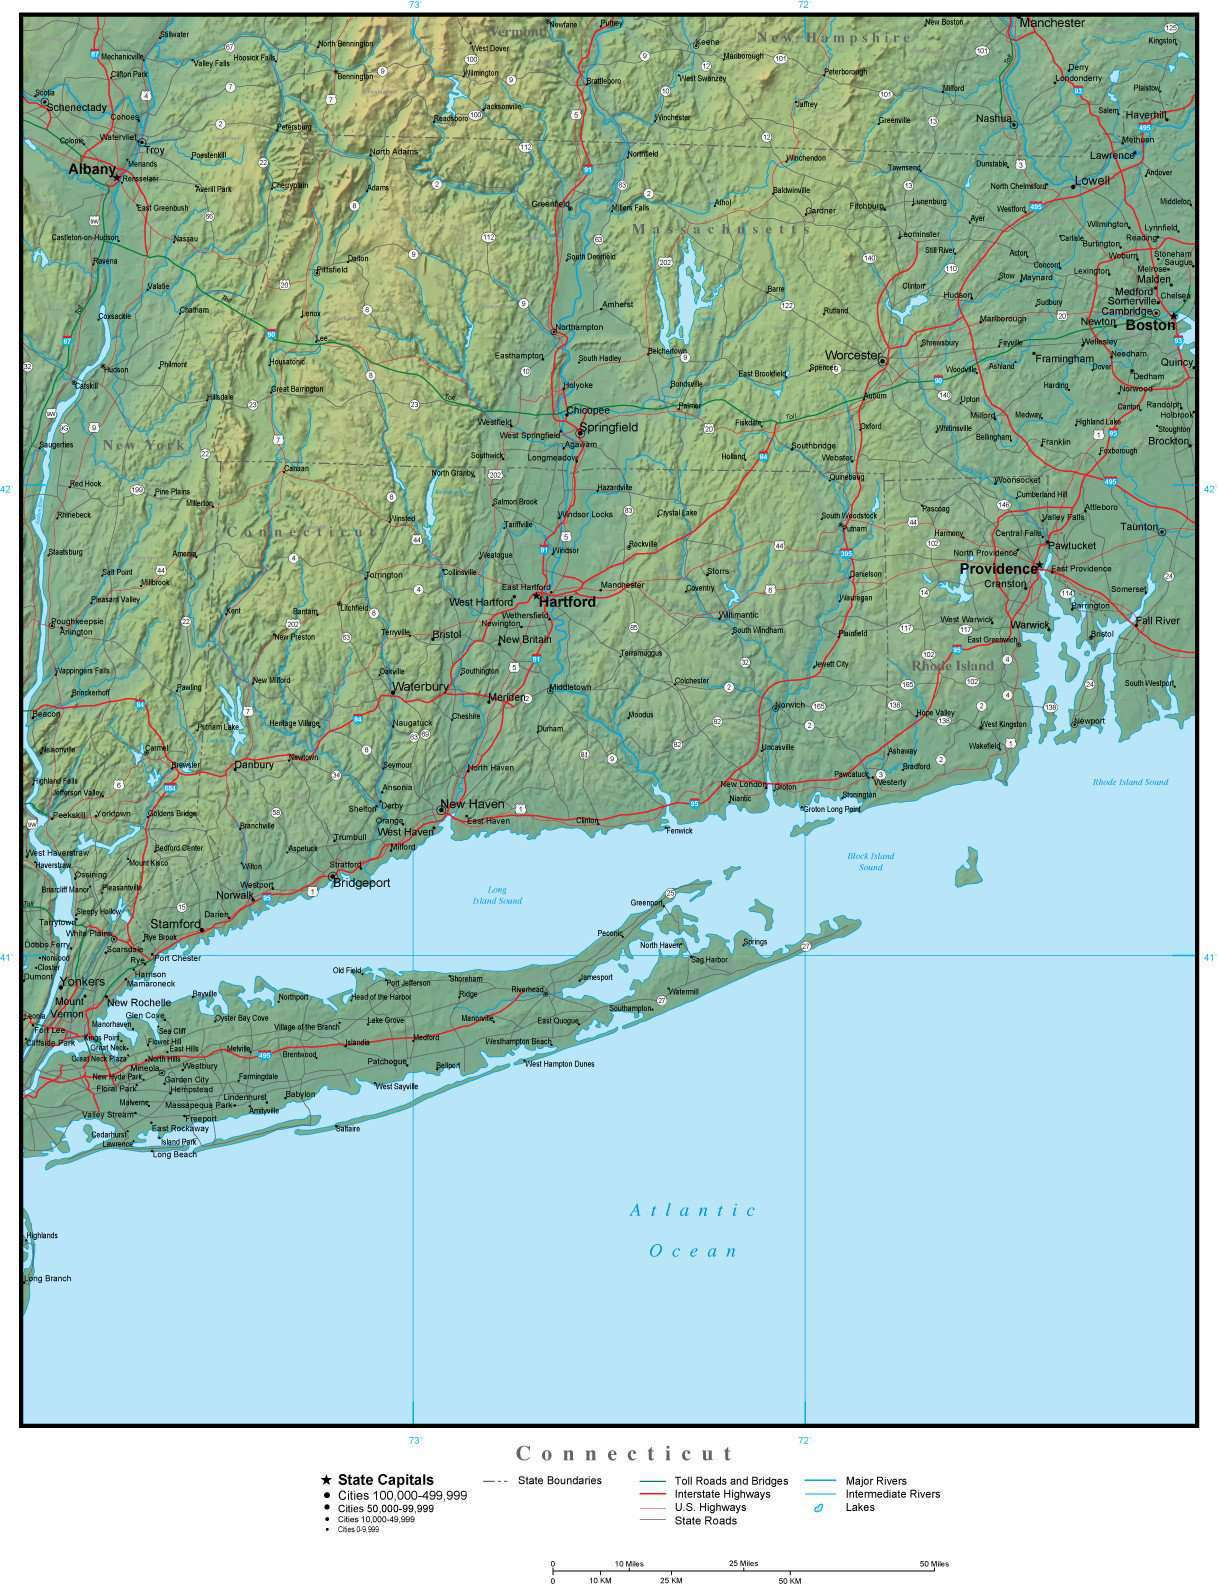 Connecticut Map Plus Terrain with Cities Roads and Water Features